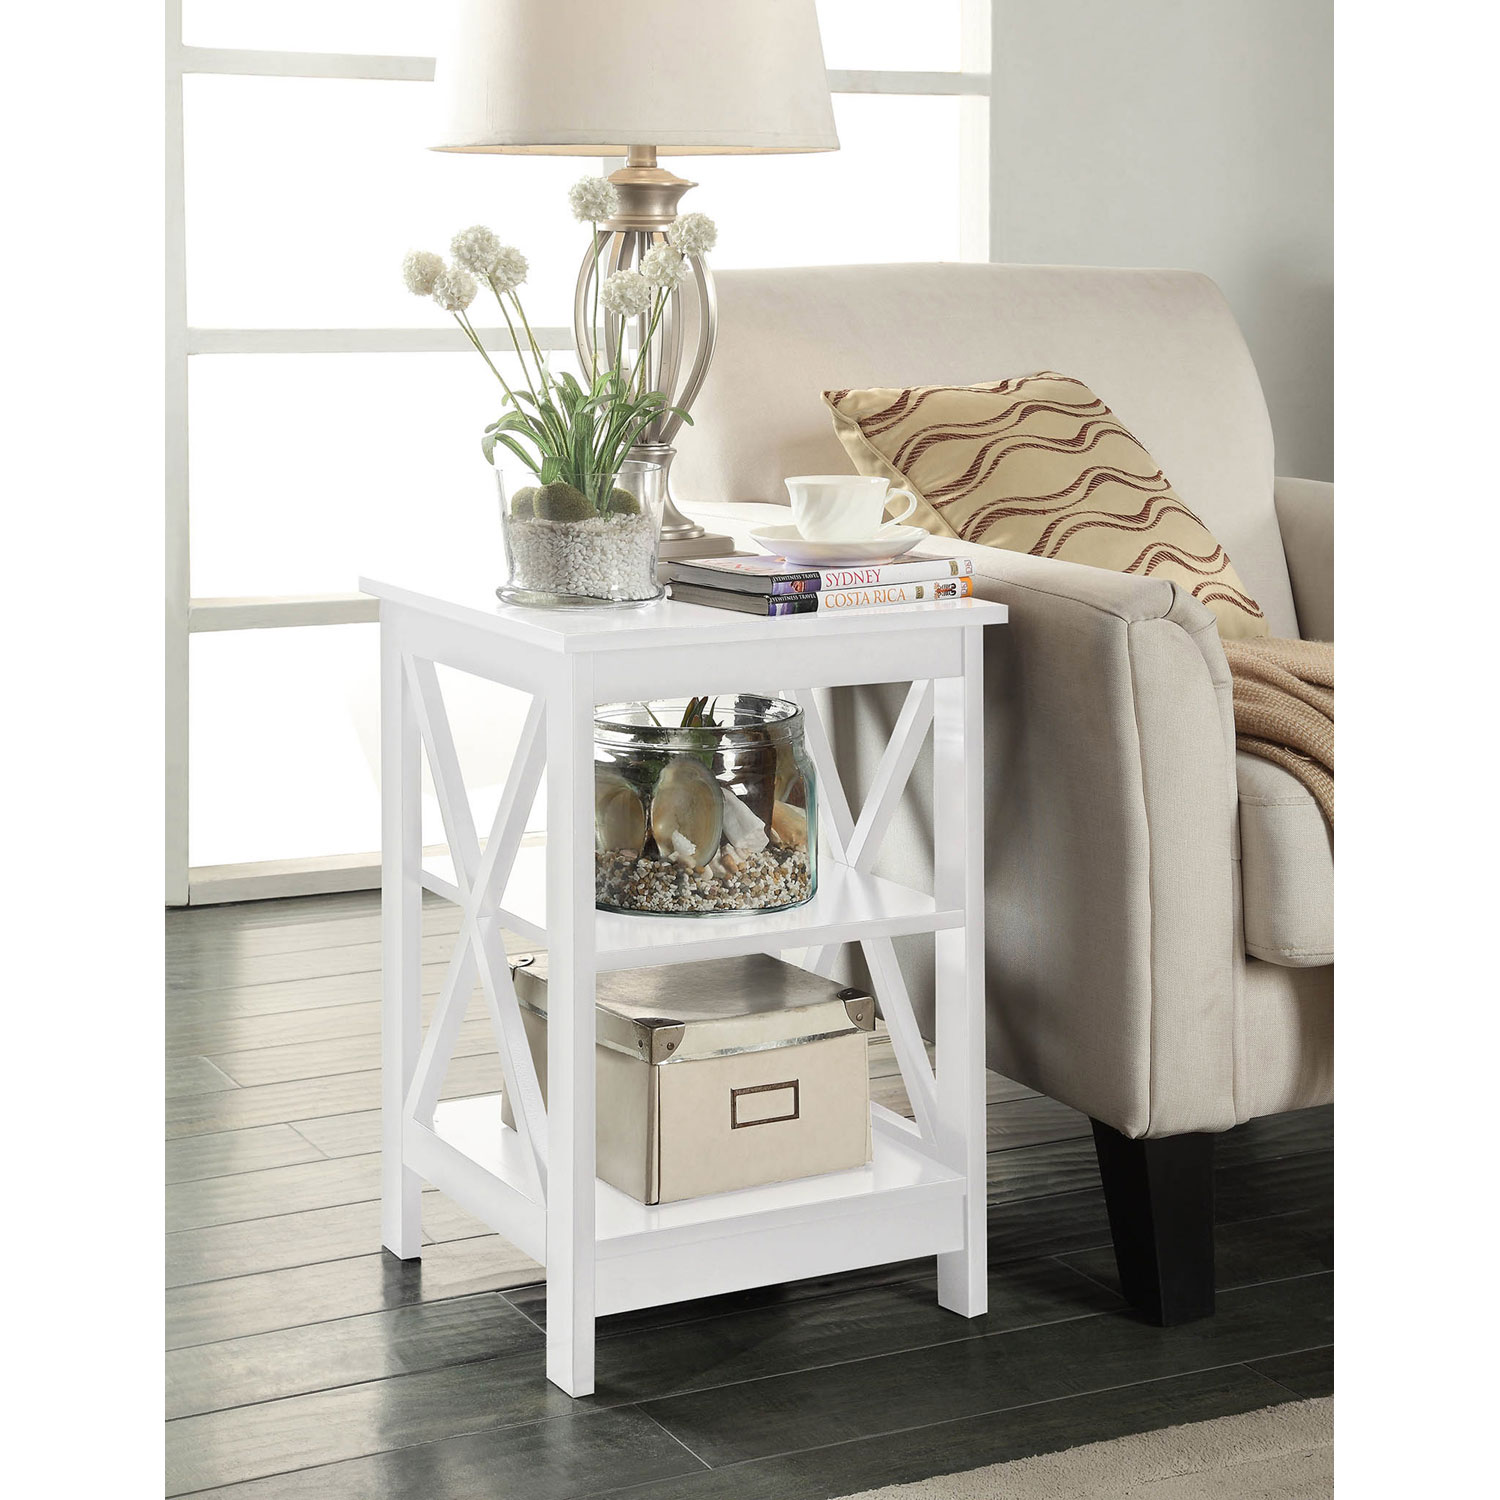 charming white end tables fresh set bedroom engaging model architecture view convenience concepts oxford table bellacor threshold margate accent target buffet ikea outdoor wine